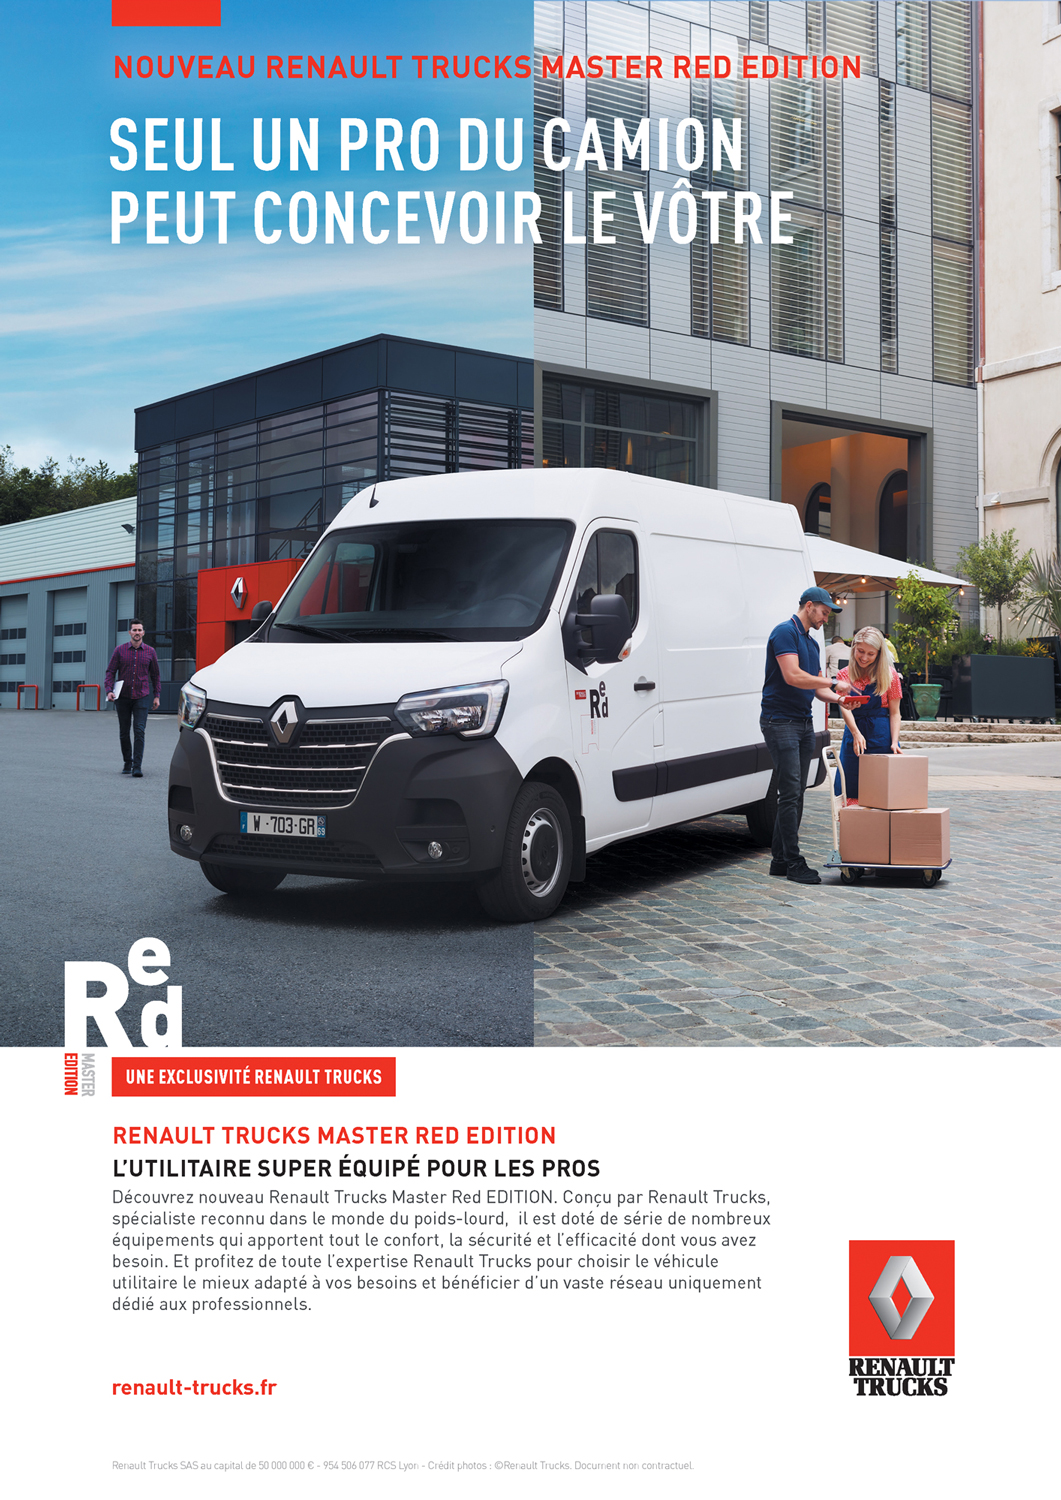 Approach_Retouch_London_Renault_Master_Vans_Trucks_003